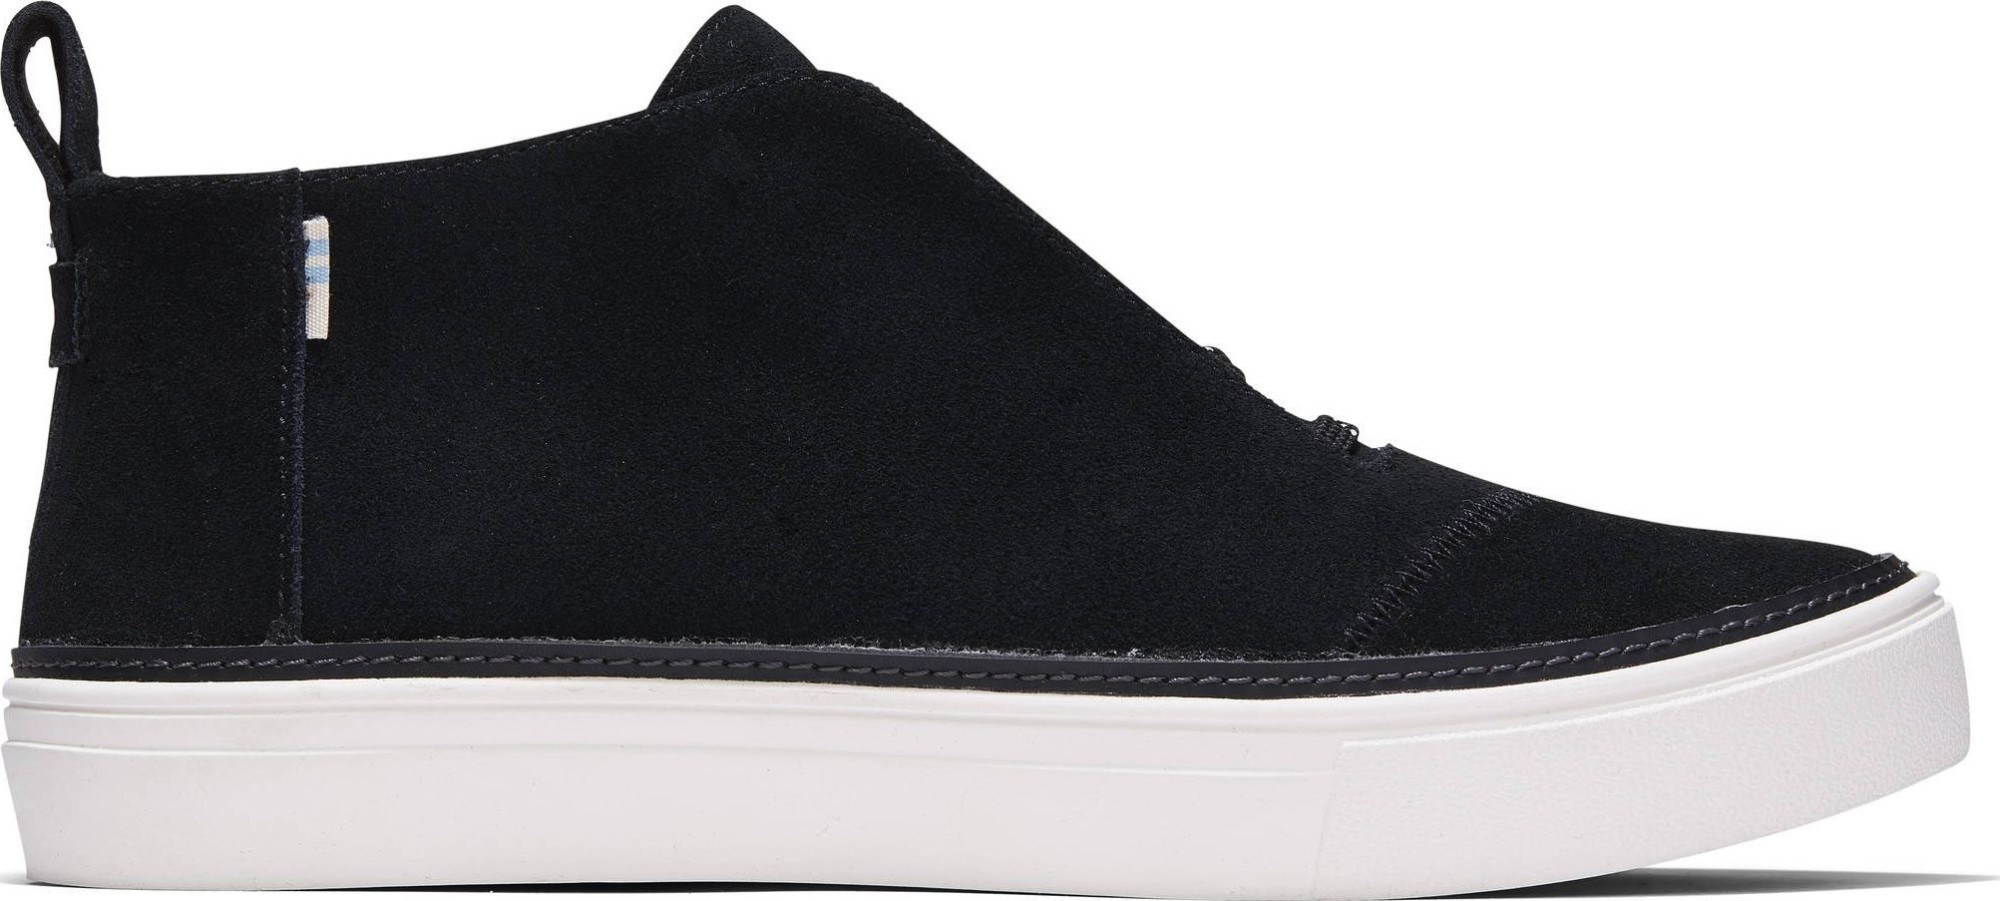 TOMS Suede Women's Riley Sneaker Black 37,5